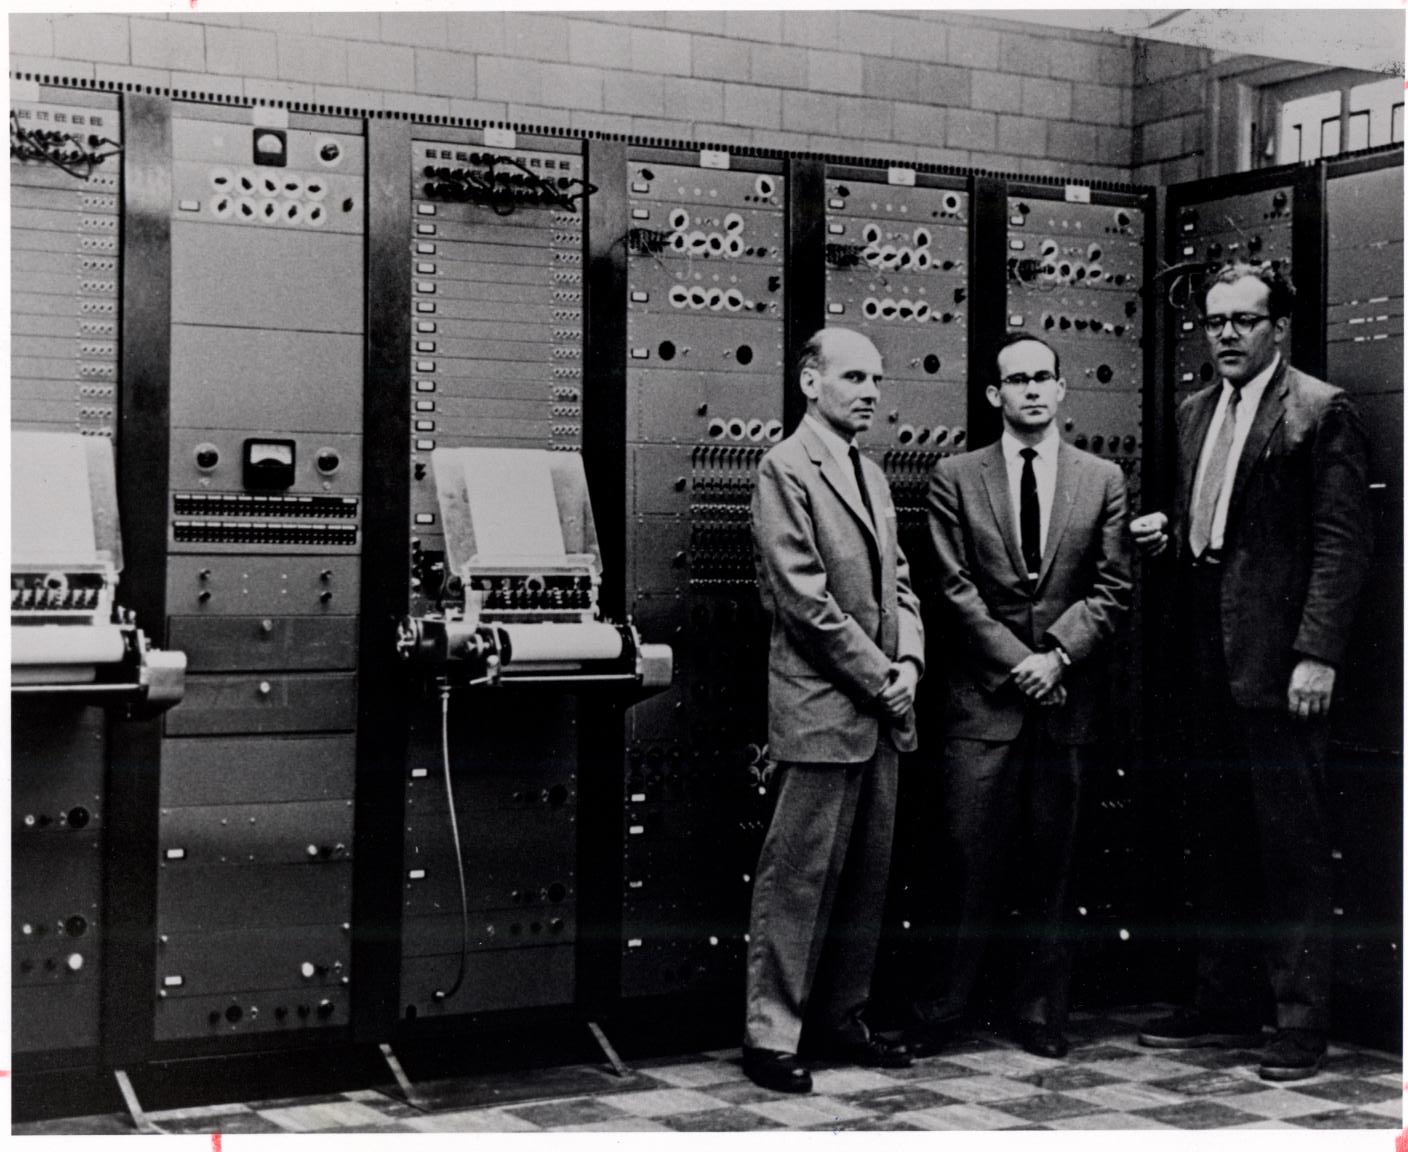 Milton Babbitt, Peter Mauzey, and Vladimir Ussachevsky with the RCA Mark II Synthesizer